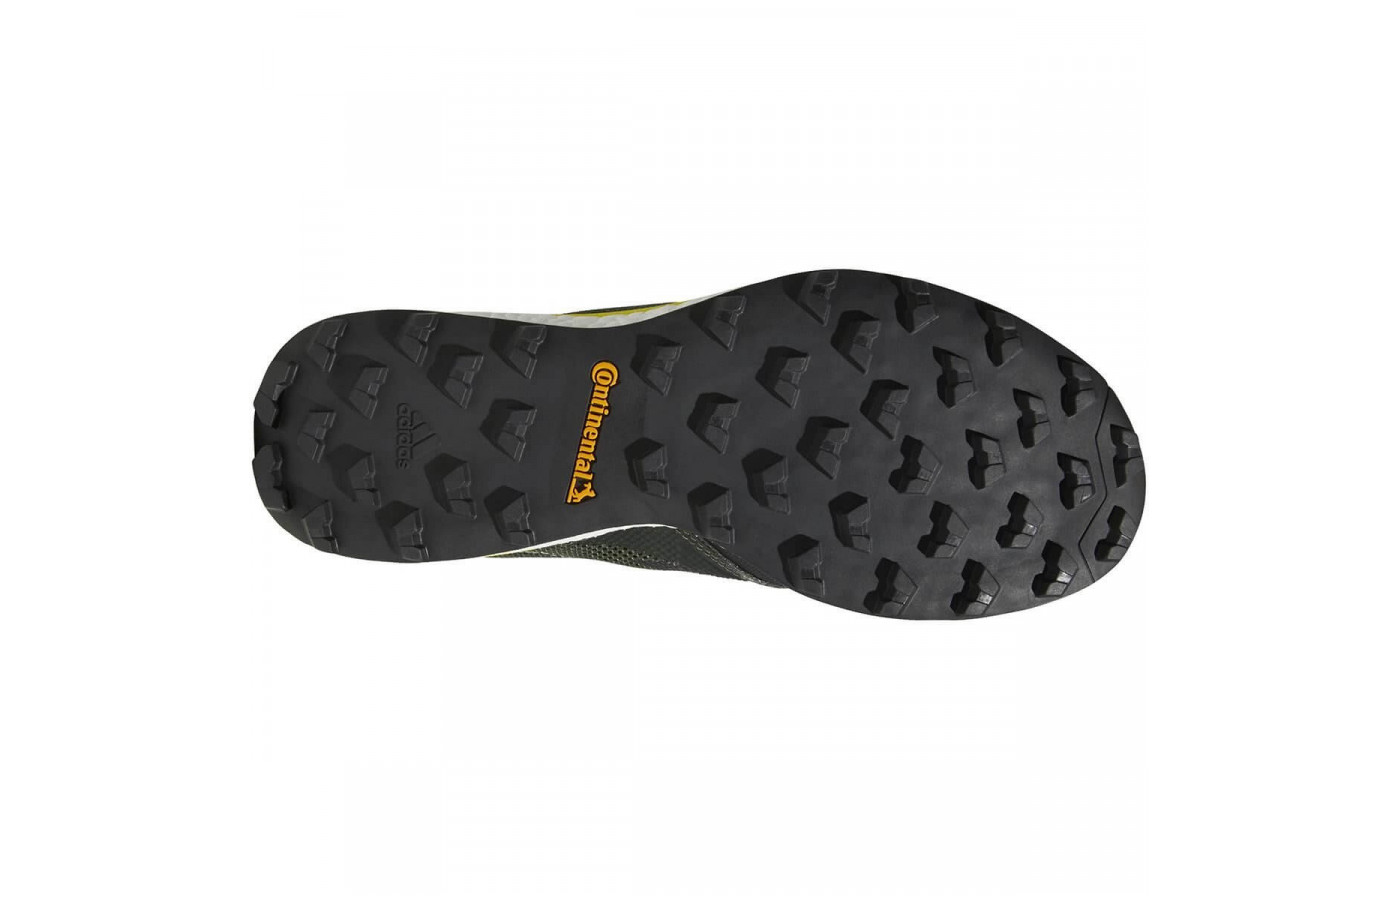 Durable Continental rubber forms the Terrex Agravic XT's outsole